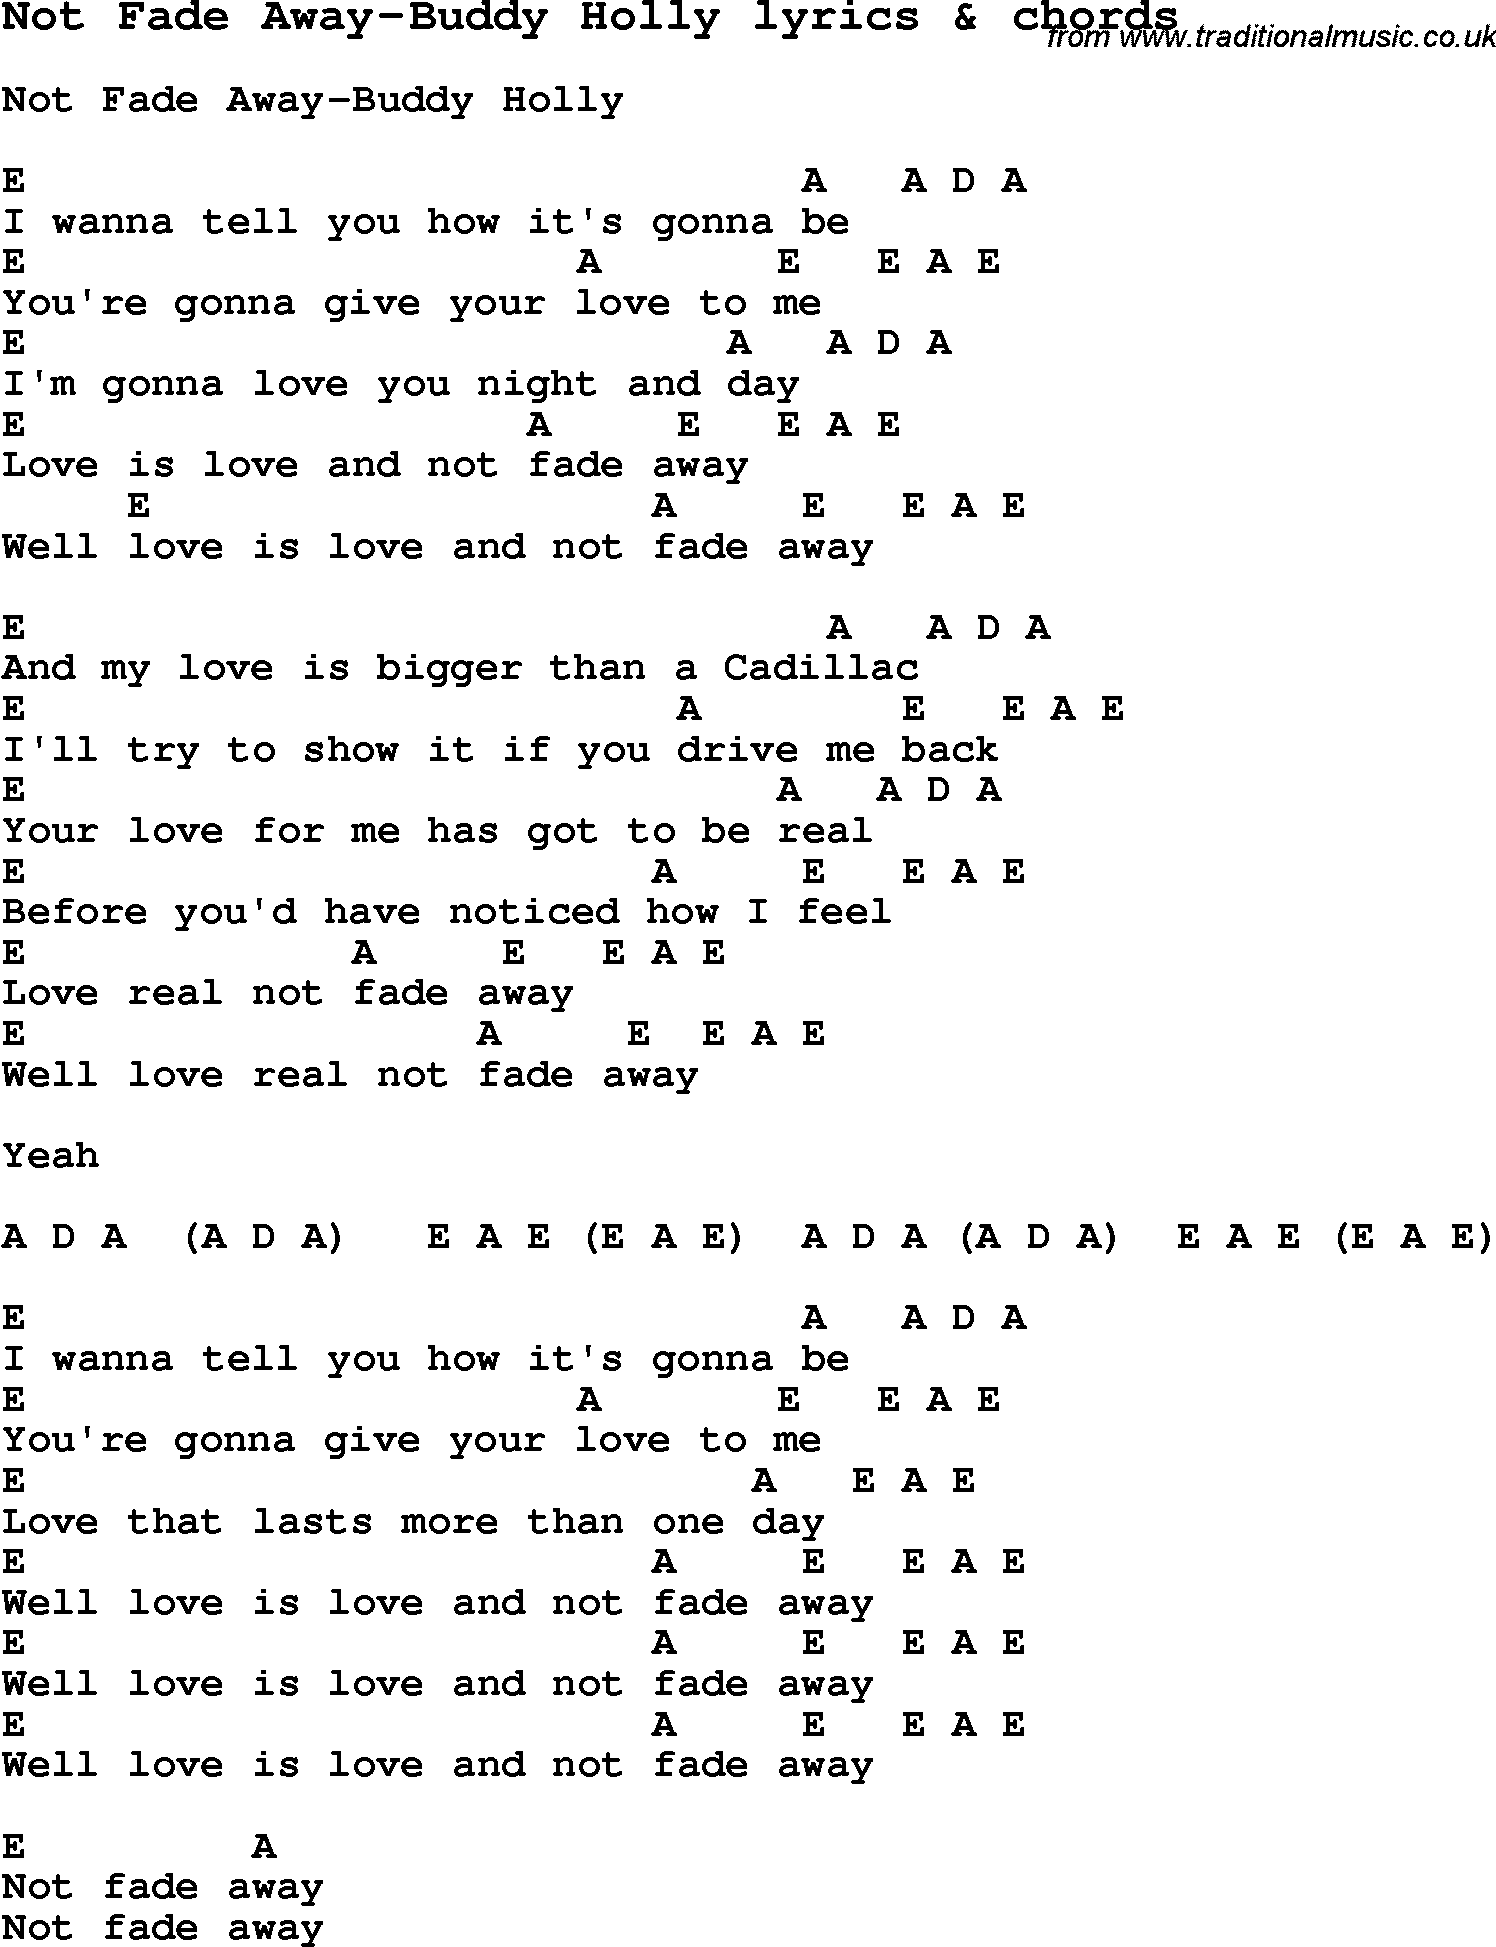 Not fade away buddy holly words pinterest buddy holly love song not fade away buddy holly with chords and lyrics for ukulele guitar banjo and other instruments hexwebz Choice Image